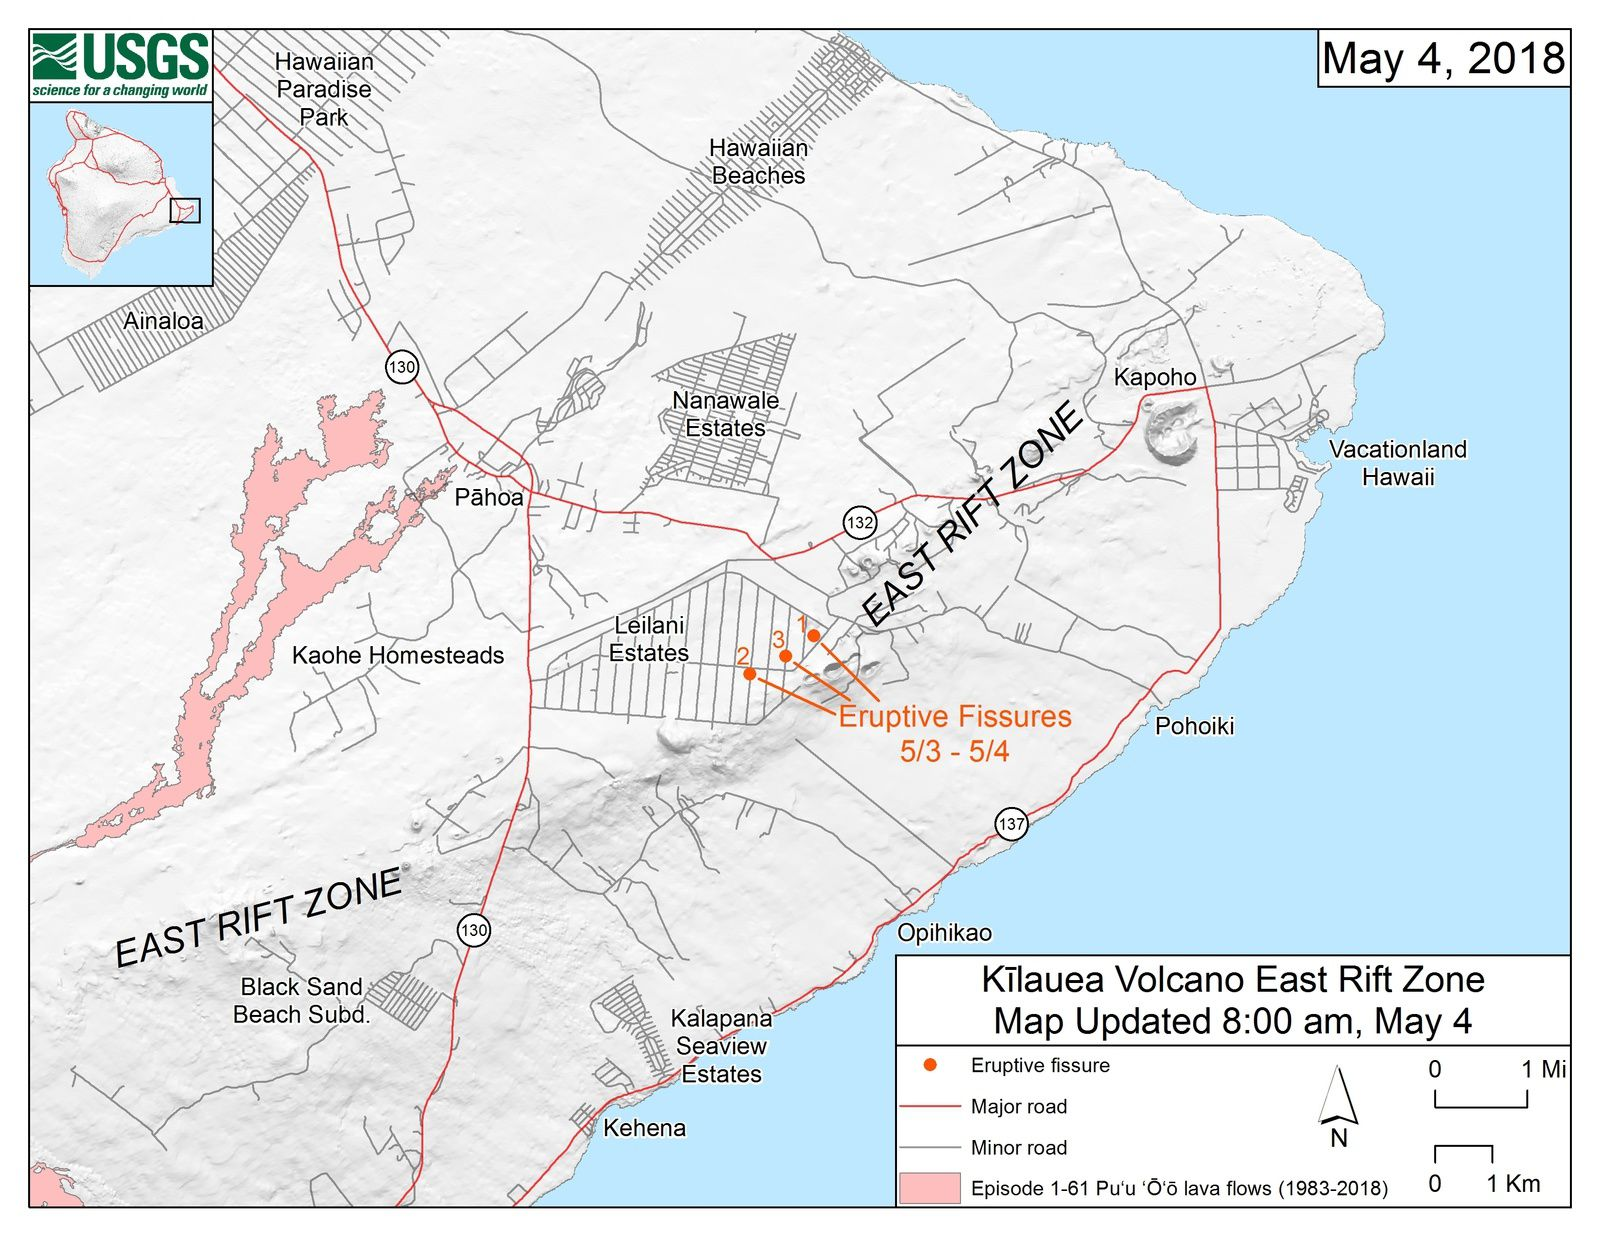 Kilauea rift zone East - location of eruptive fissures in Leilani Estates at 04.05.2018 / 8h - HVO map